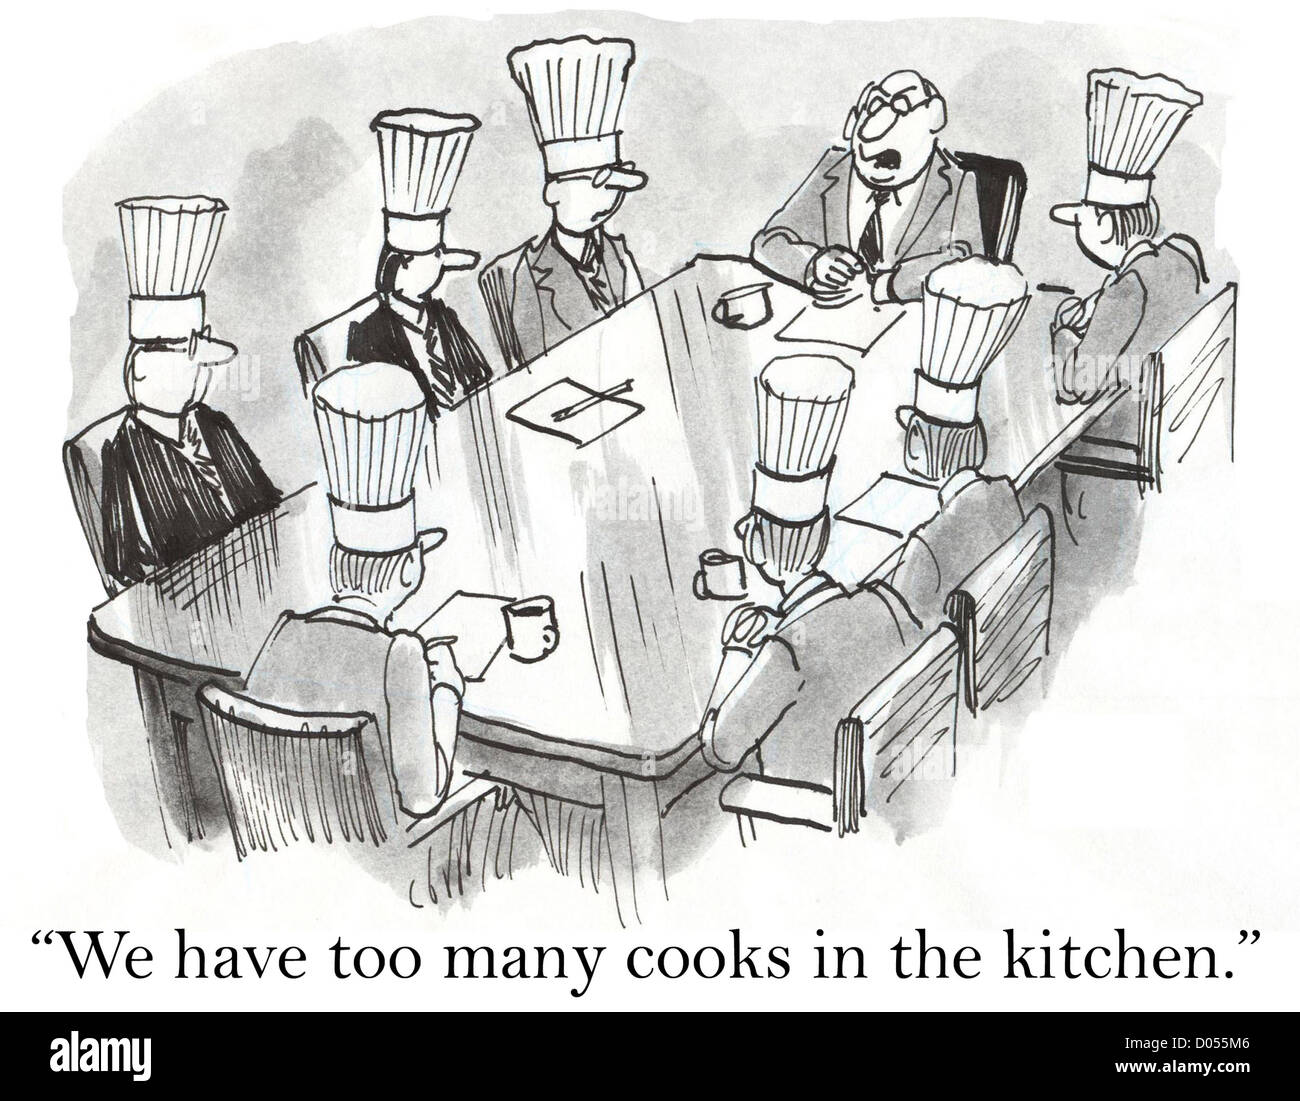 We have too many cooks in the kitchen Stock Photo: 51745350 - Alamy